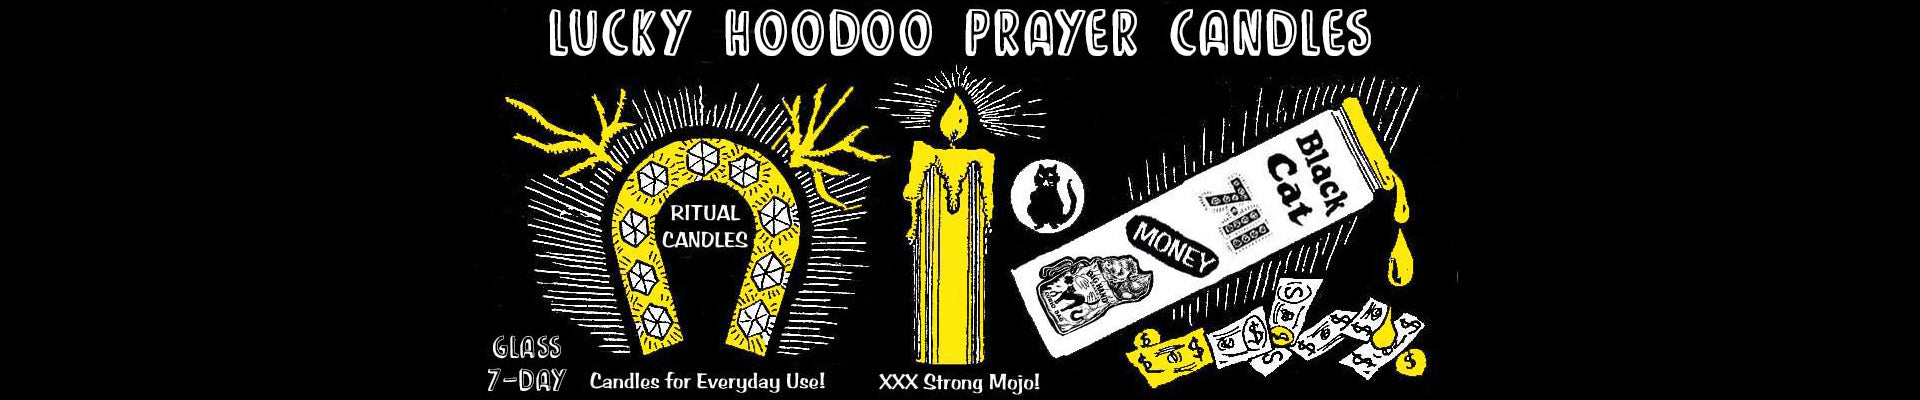 Hoodoo Prayer Candles